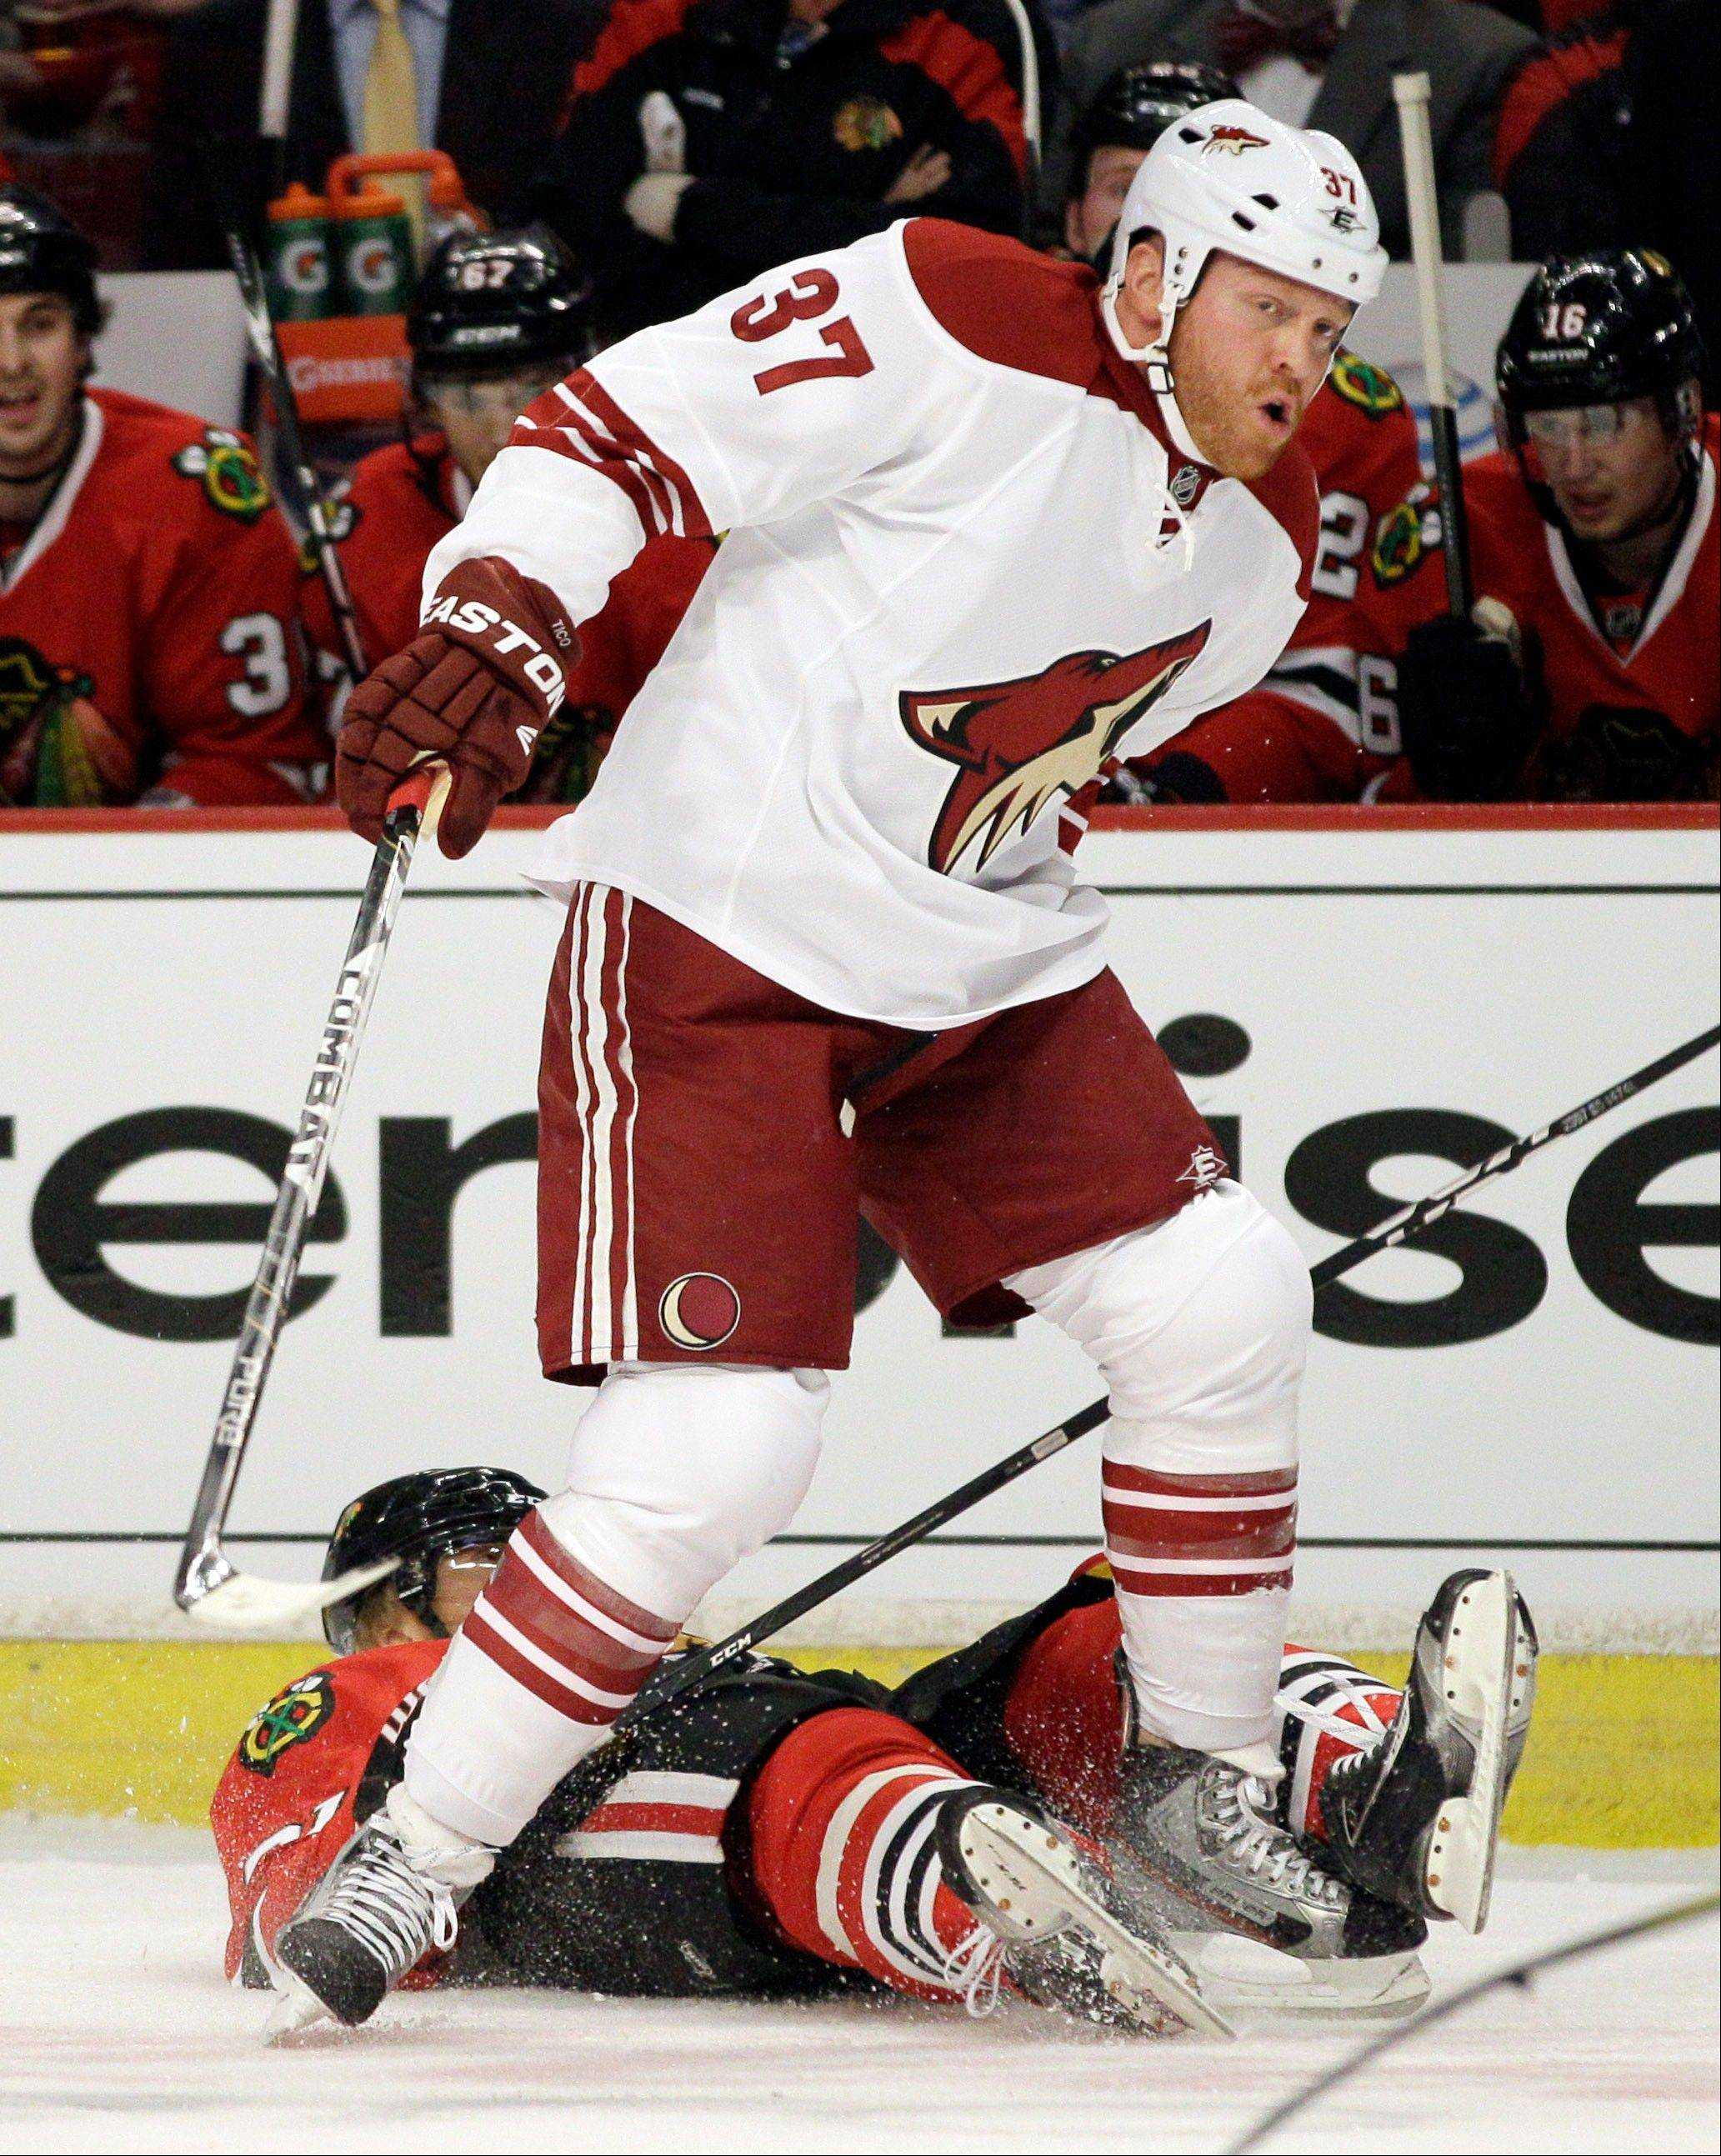 The Hawks' Marian Hossa falls down after getting checked by the Coyotes' Raffi Torres during the first period of Game 3 of thire first-round playoff series at the United Center.